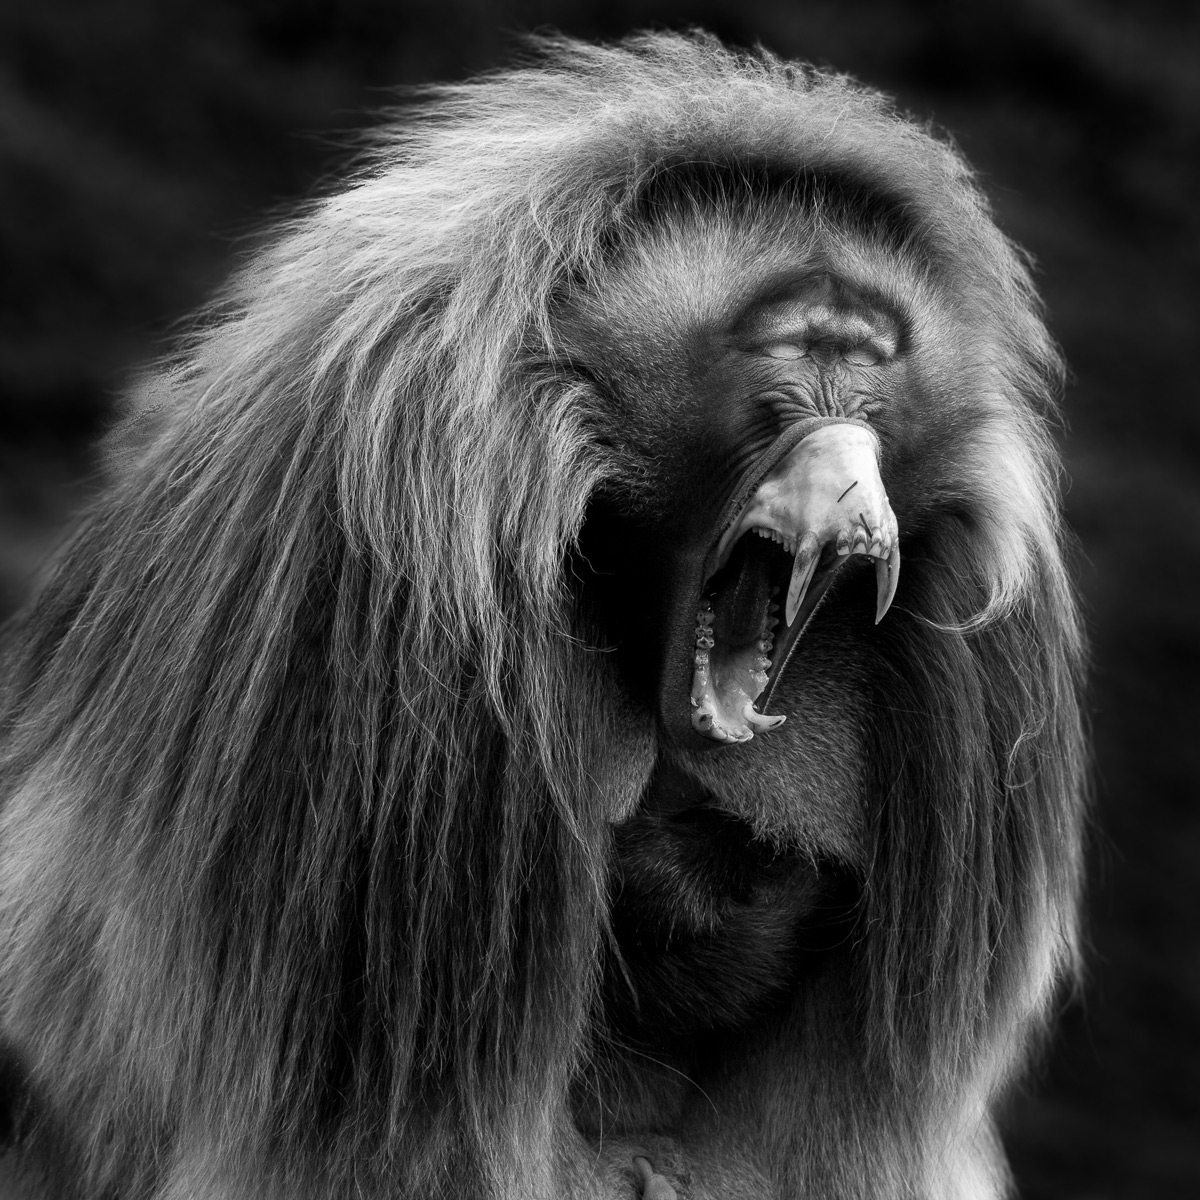 A gelada (also known as a bleeding-heart monkey) yawns in Simien Mountains National Park, Ethiopia © Patrice Quillard